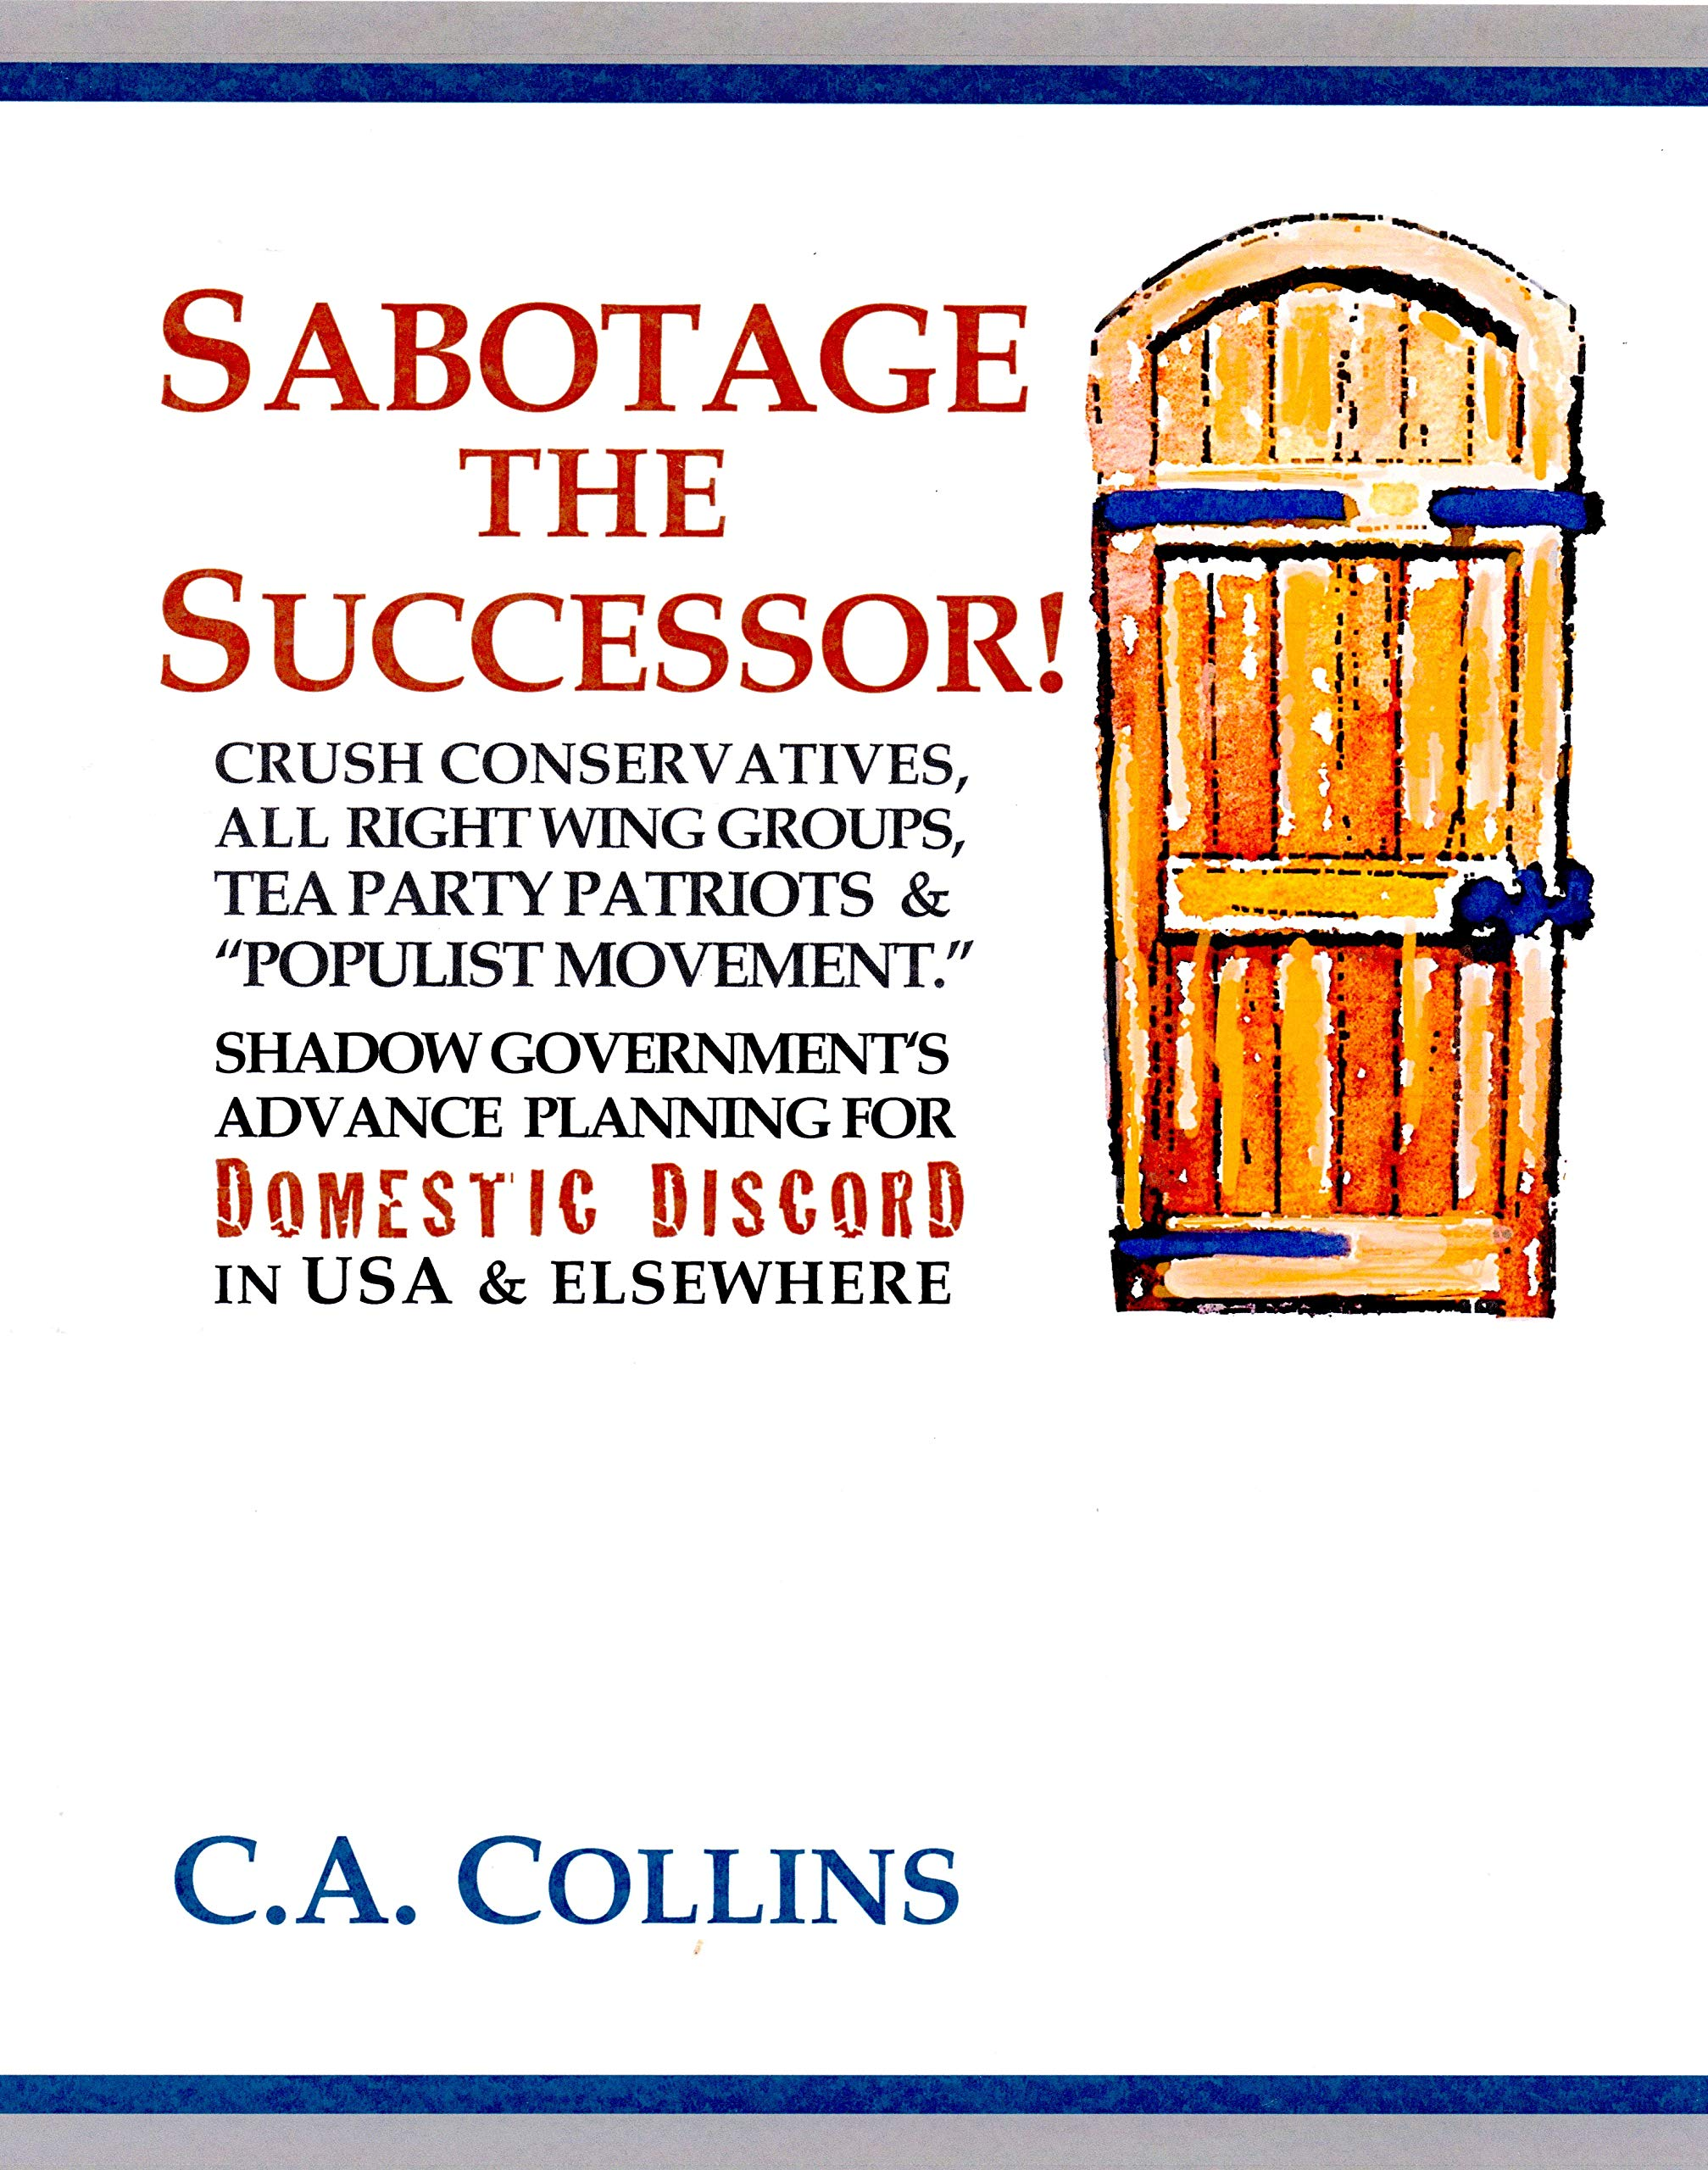 SABOTAGE THE SUCCESSOR: Crush Conservatives, all Right Wing Groups. Tea Party Patriots & Populist Movement. Shadow Government's advance planning for Domestic Discord in USA & elsewhere